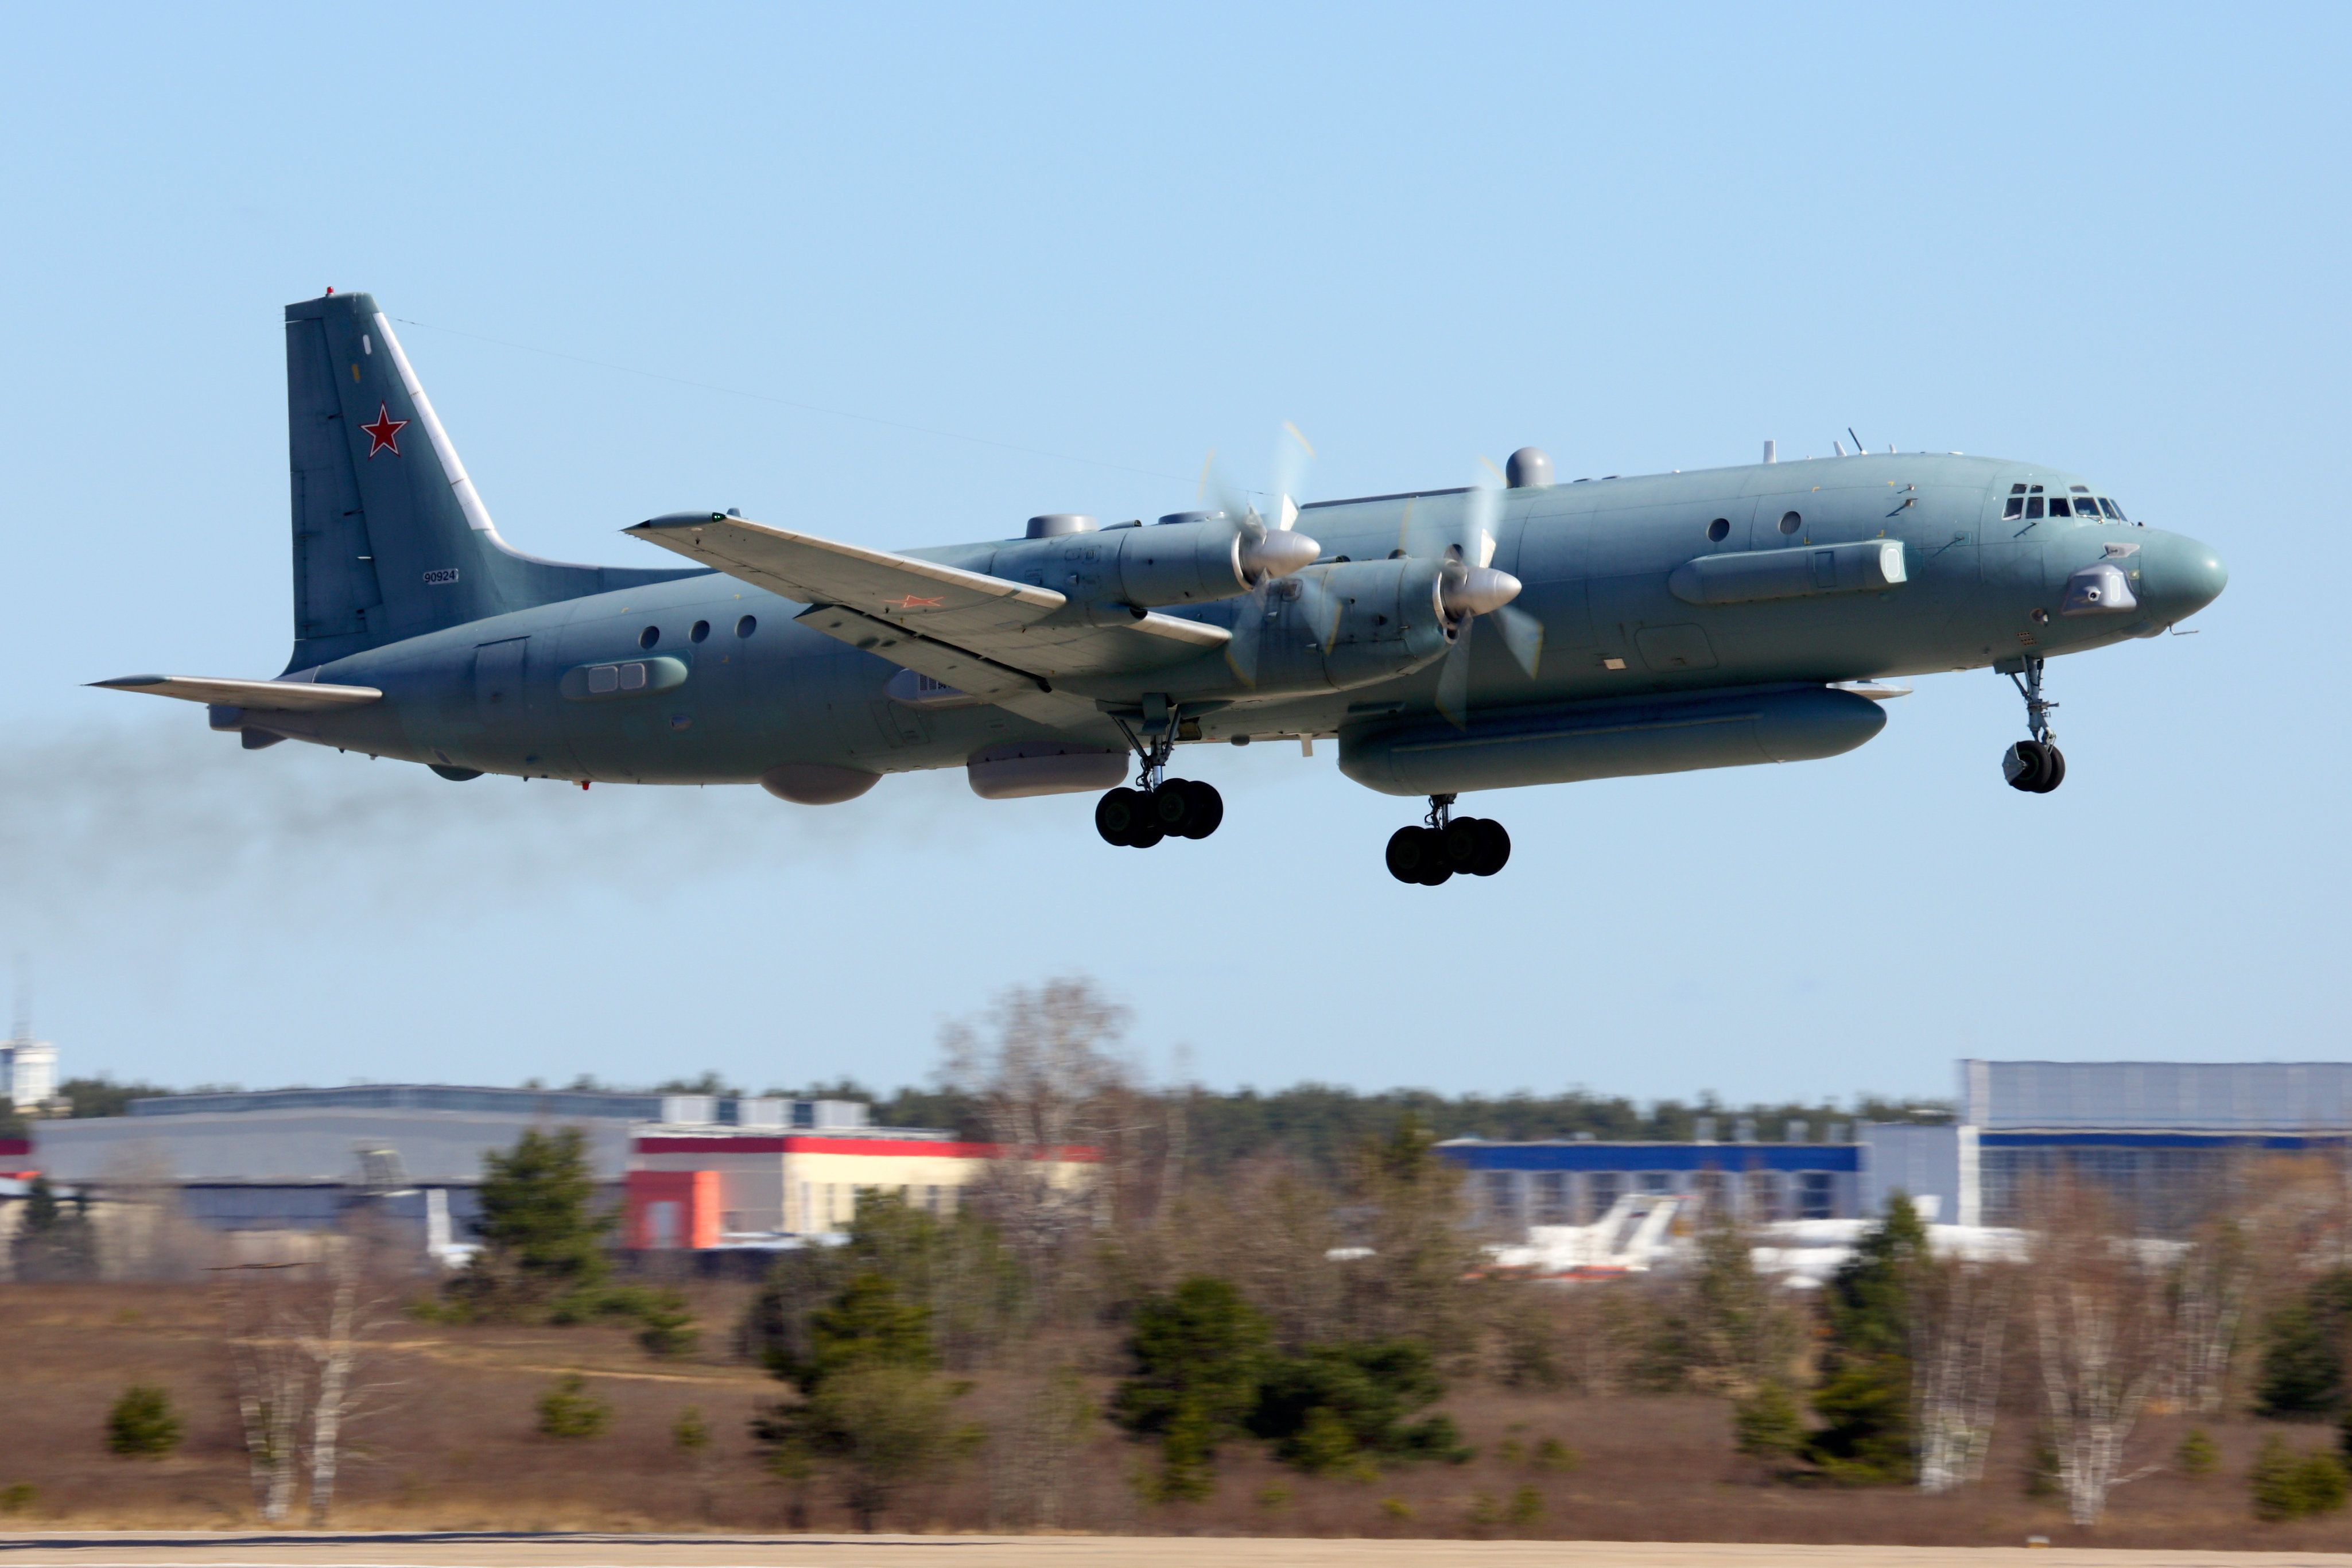 Zhukovsky, Moscow Region, Russia - February 13, 2014: Ilyushin Il-20M 90924 reconnaissance airplane takes off at Zhukovsky.